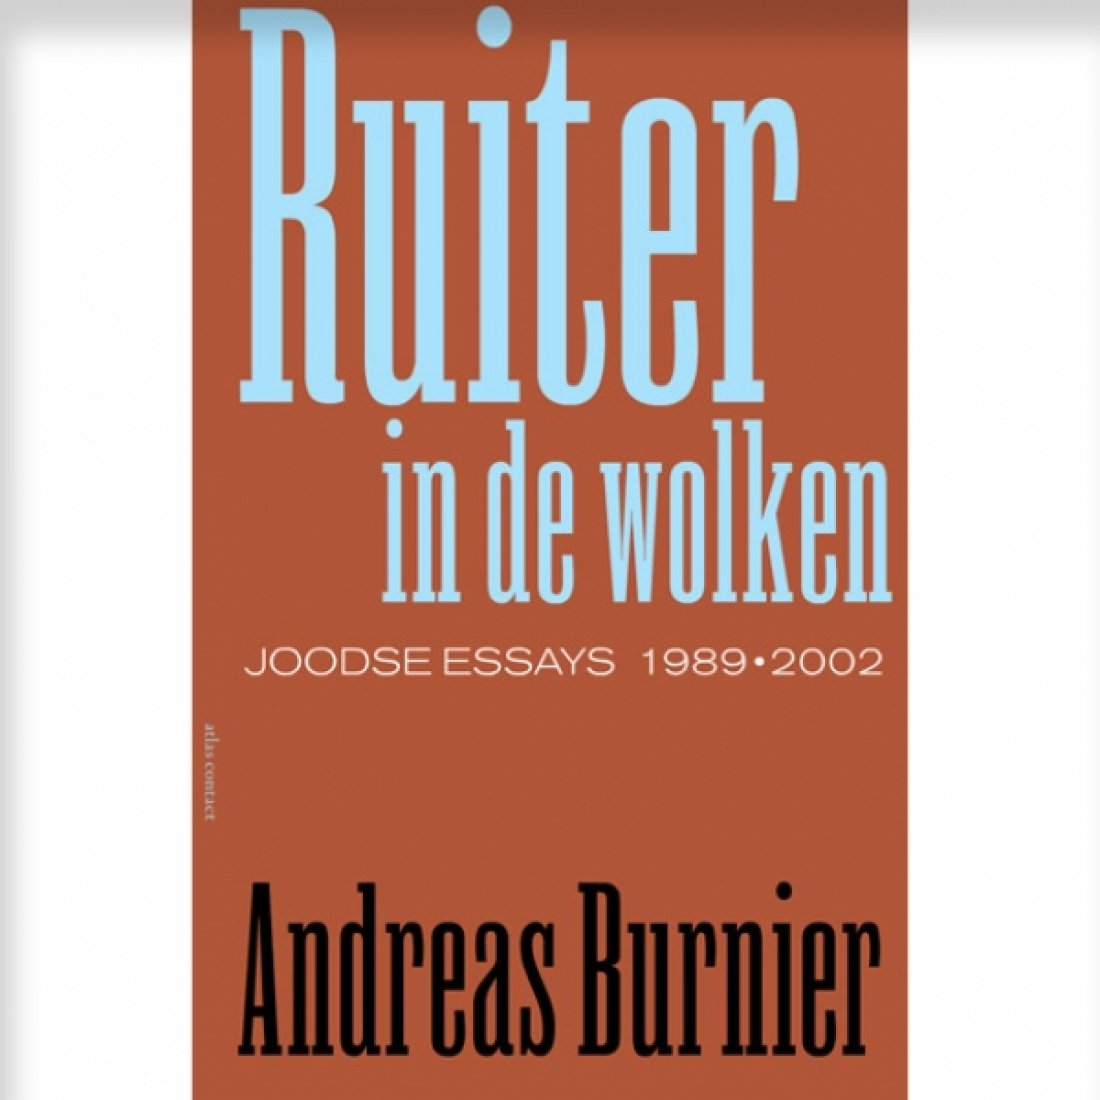 Essays van Andreas Burnier 2015